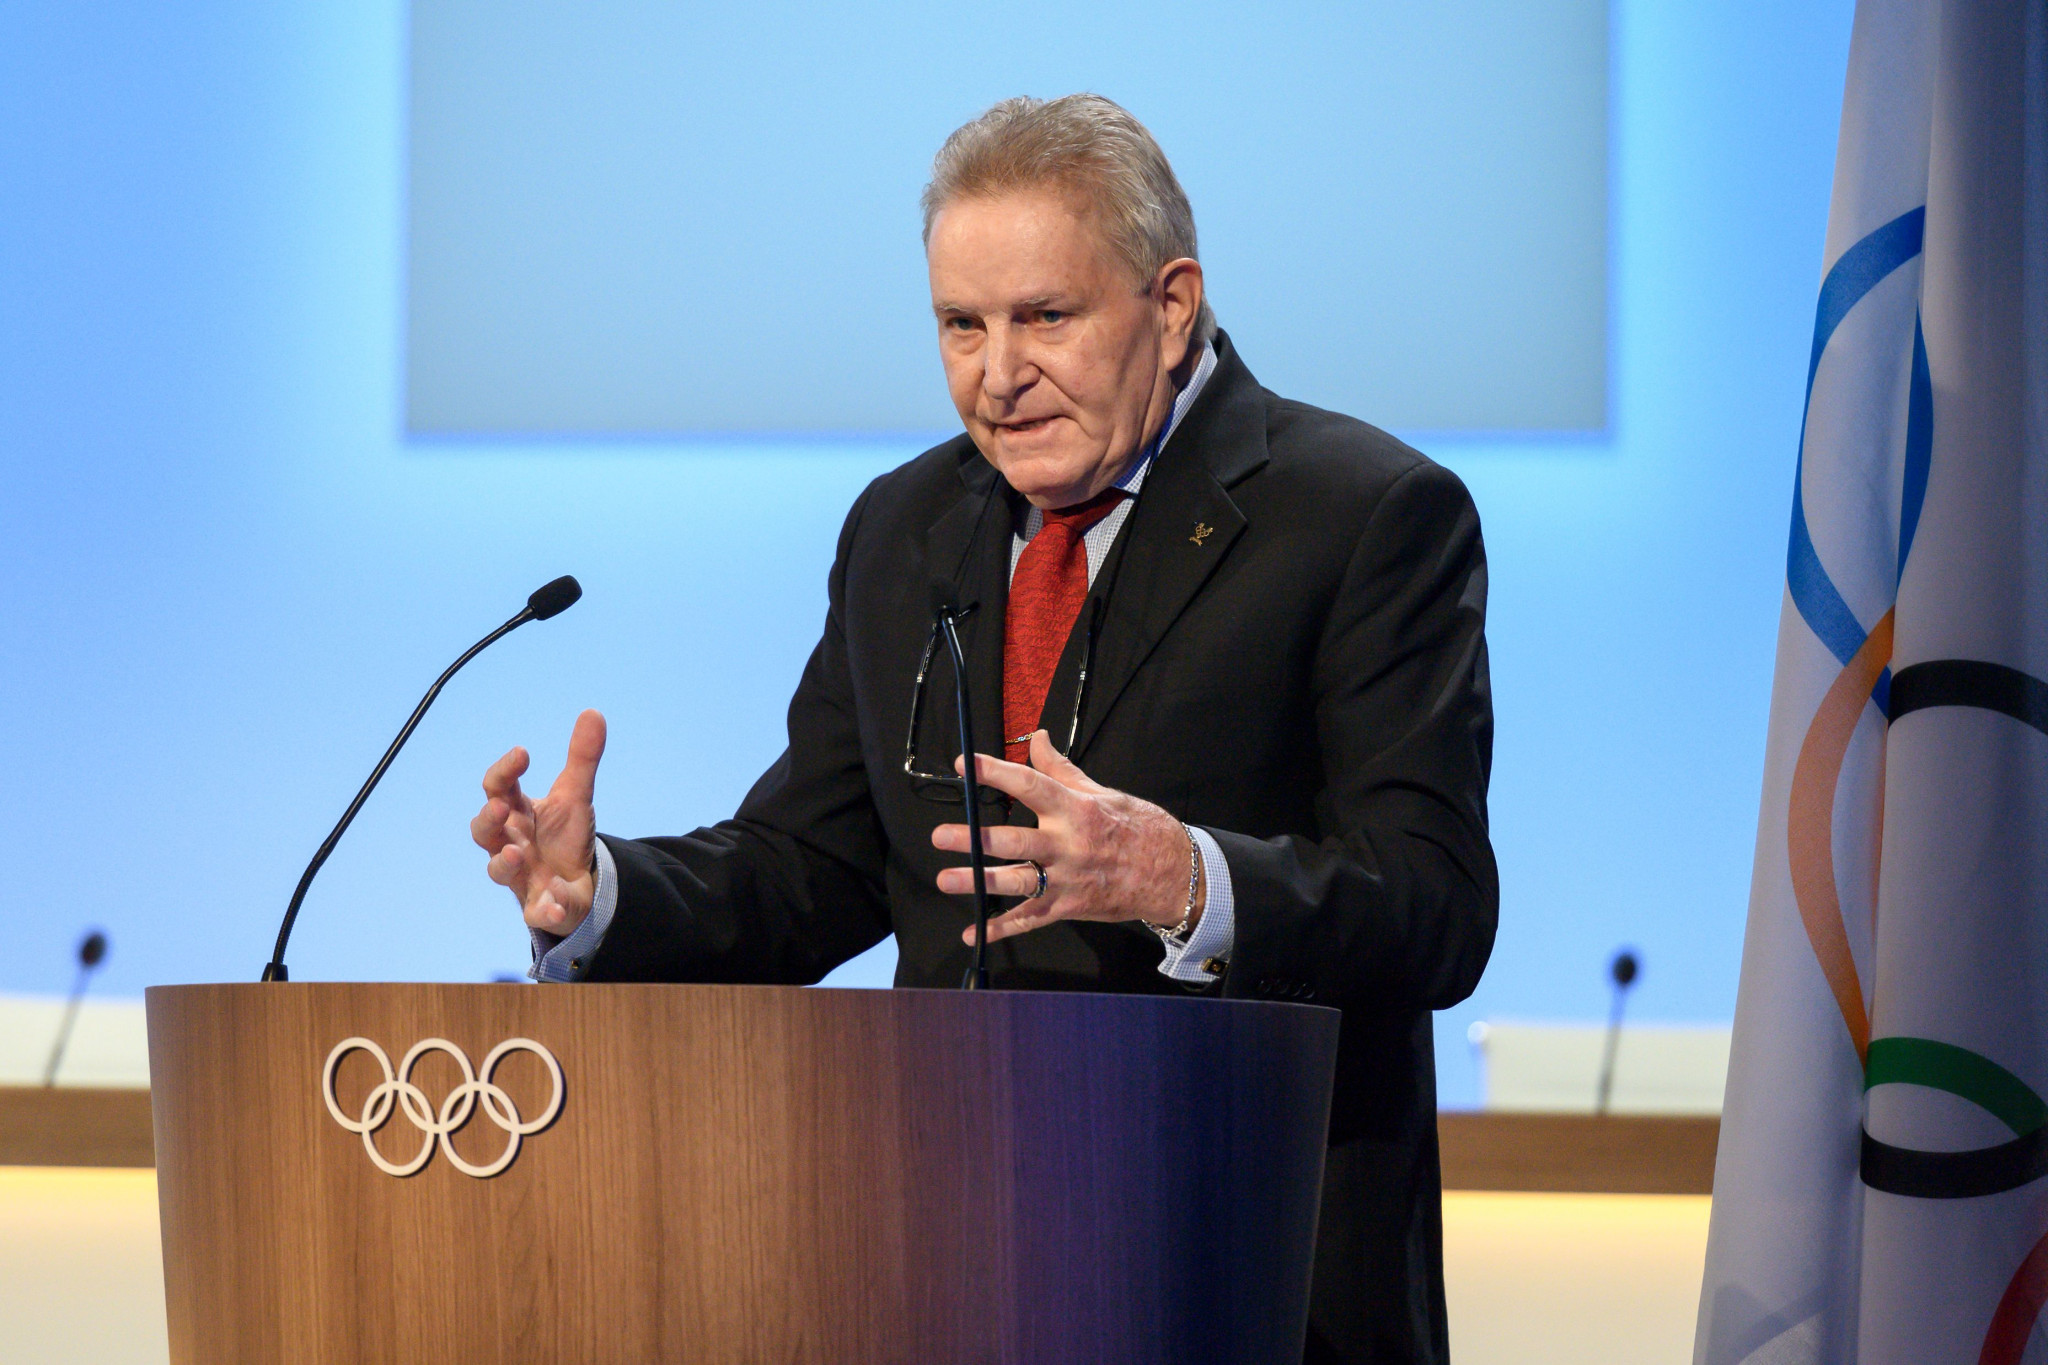 Denis Oswald, the Swiss who headed the IOC Disciplinary Commission which found 39 Russian athletes guilty of doping at Sochi 2014, was angry at claims it had been set up to ultimately fail ©Getty Images